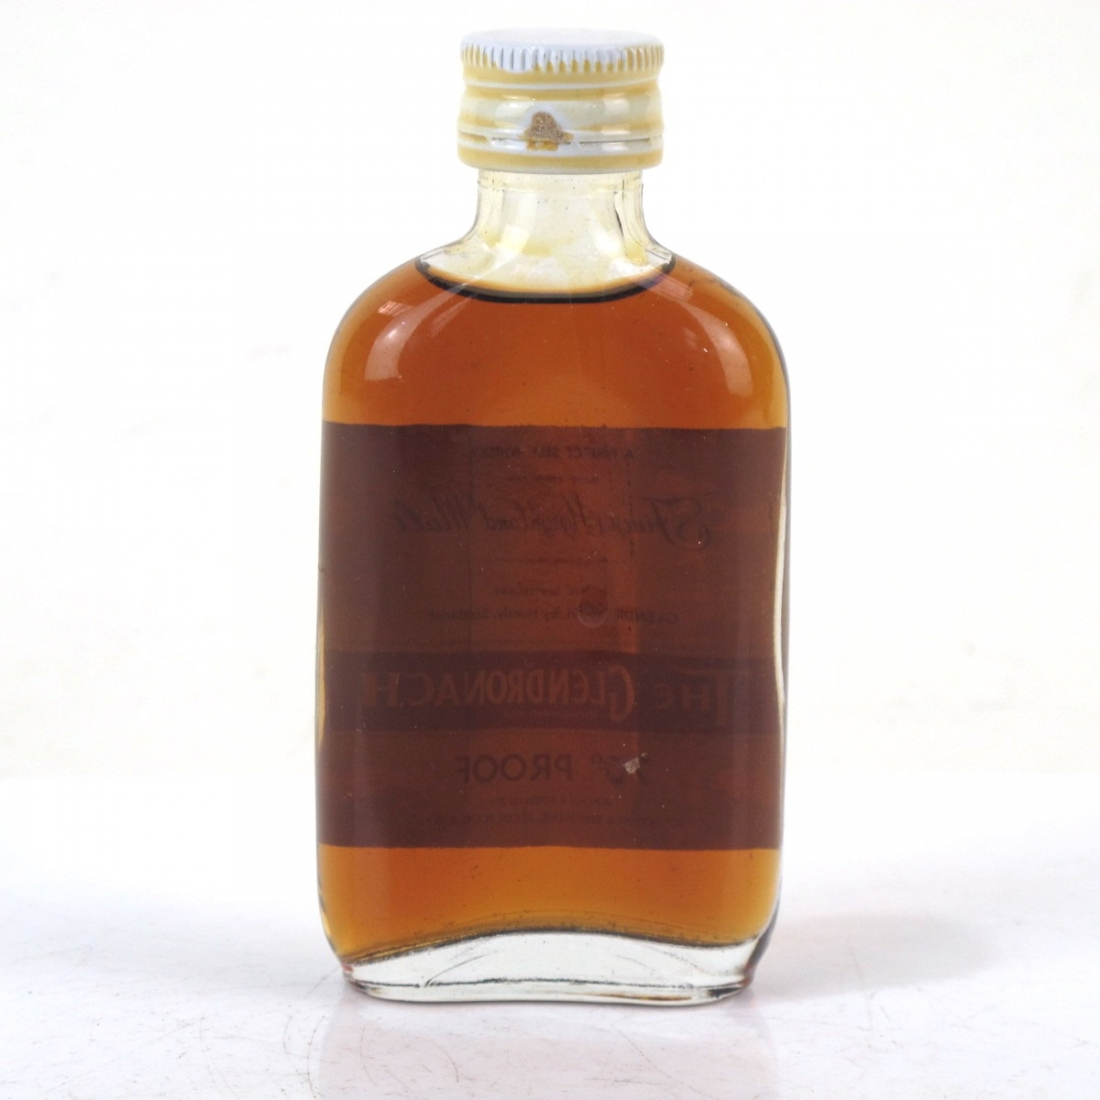 Glendronach Gordon and MacPhail 70 Proof Miniature 1970s